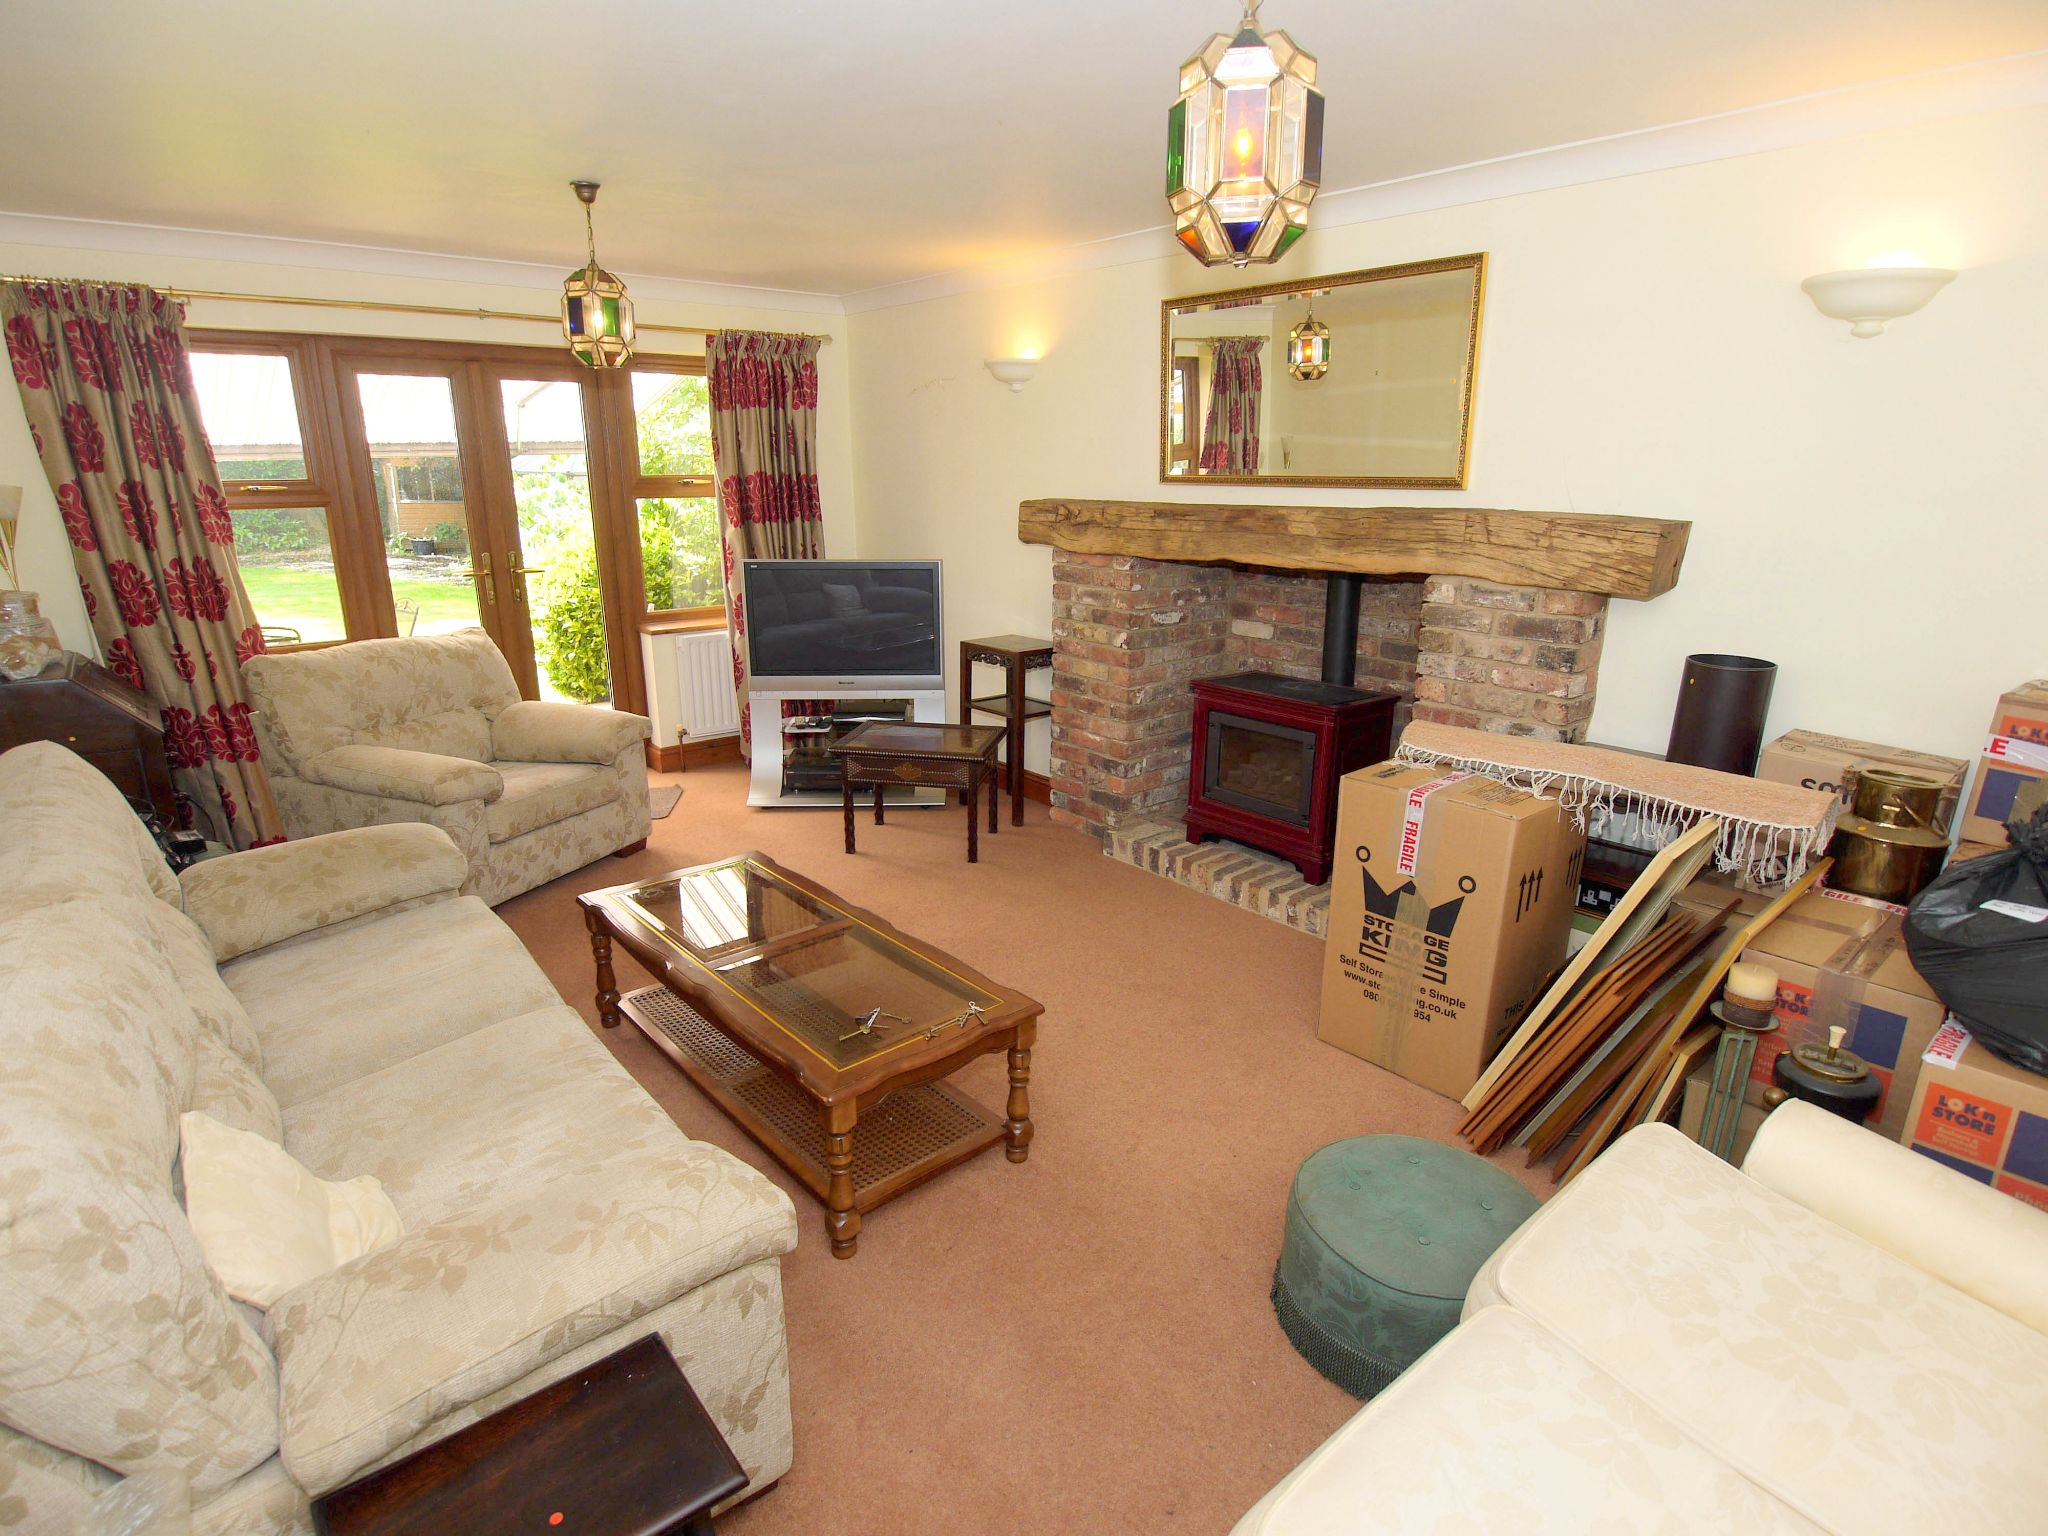 5 bedroom detached house For Sale in Tonbridge - Photograph 2